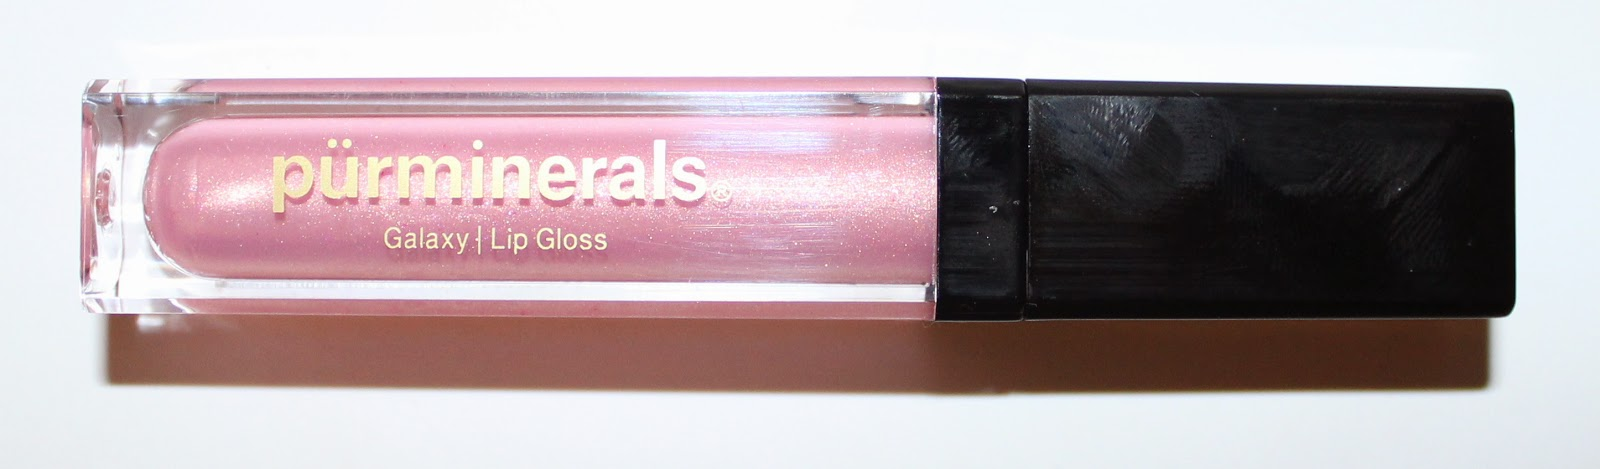 pürminerals Galaxy Lip Gloss